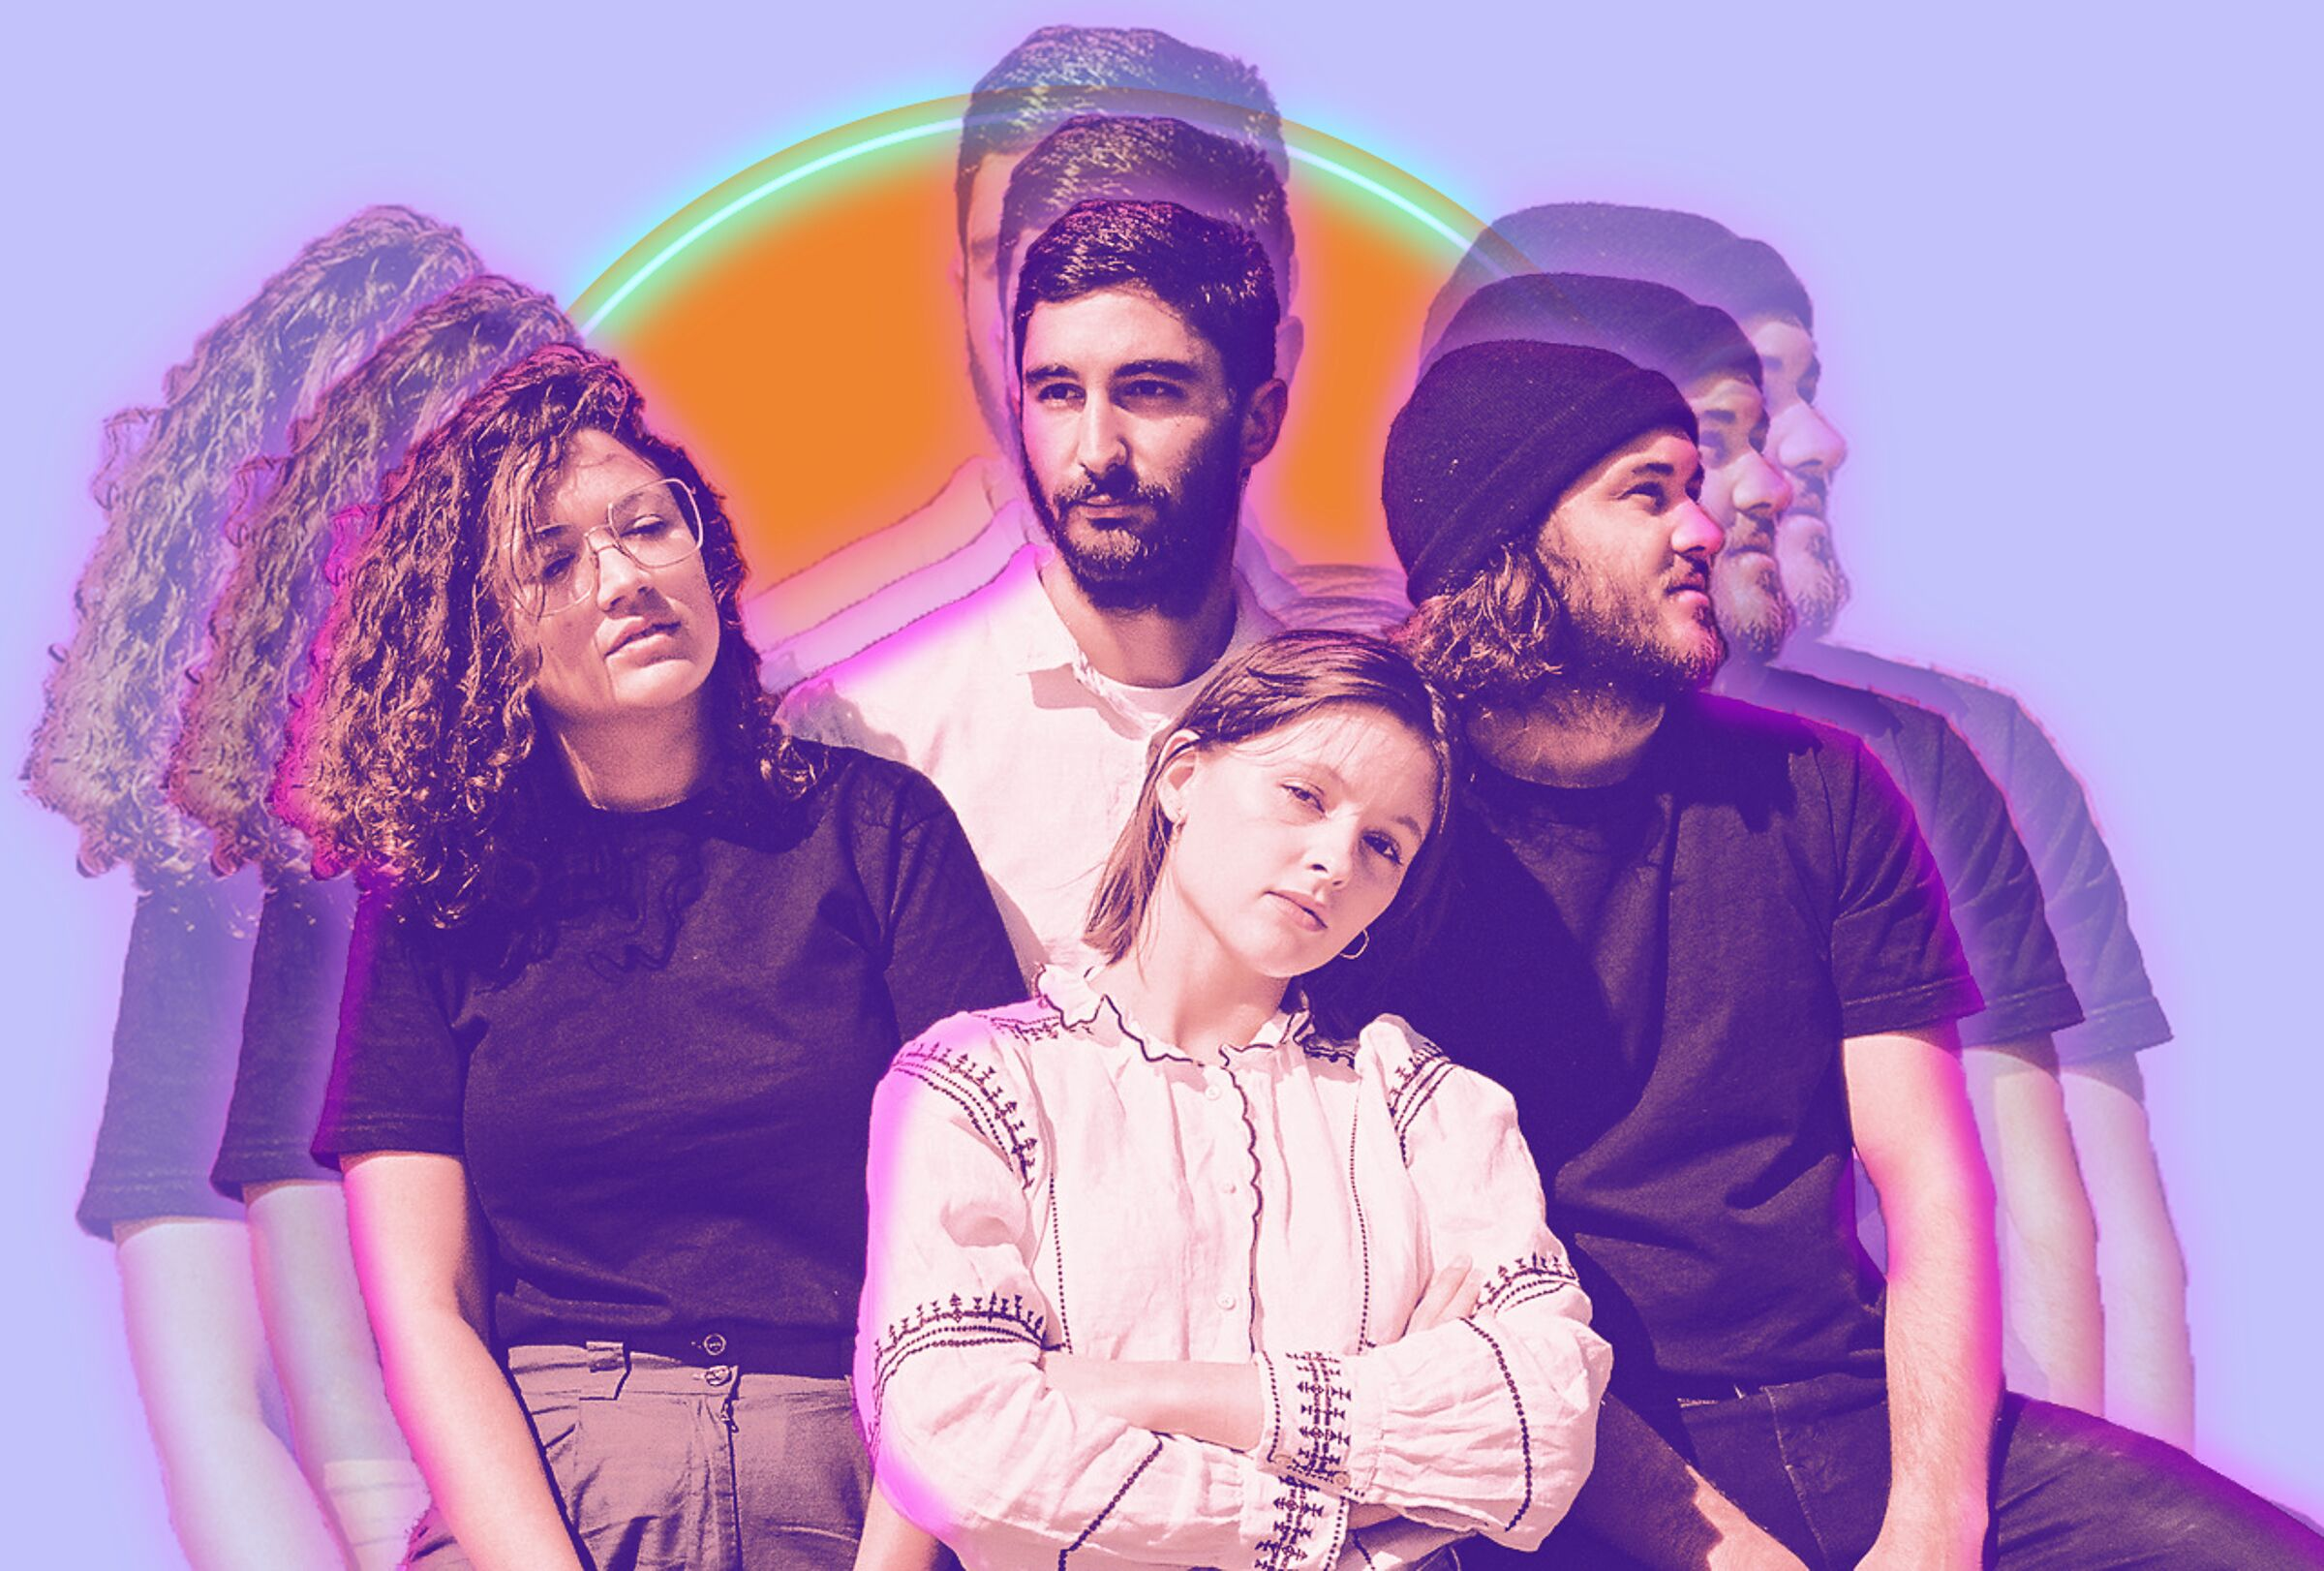 Perth Favourite's San cisco will be amongst the performers